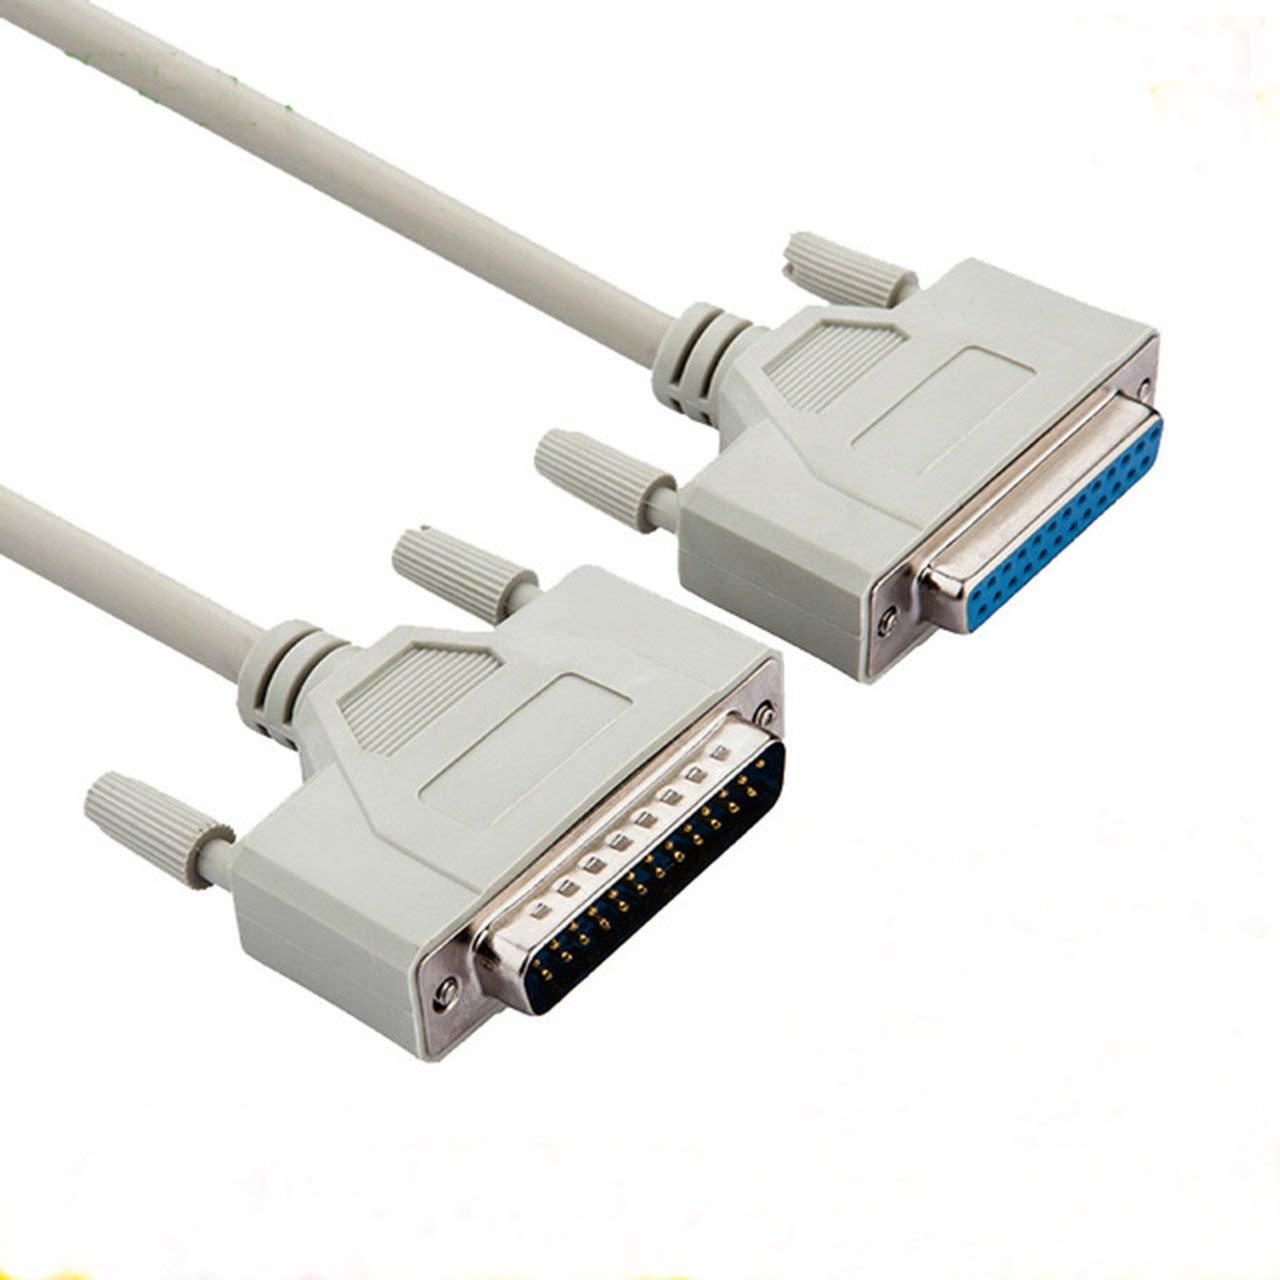 DB25 Parallel Male to Female M-F Parallel printer cable M-F LPT Printer Cable Parallel Printerextending Cable Converter Cable